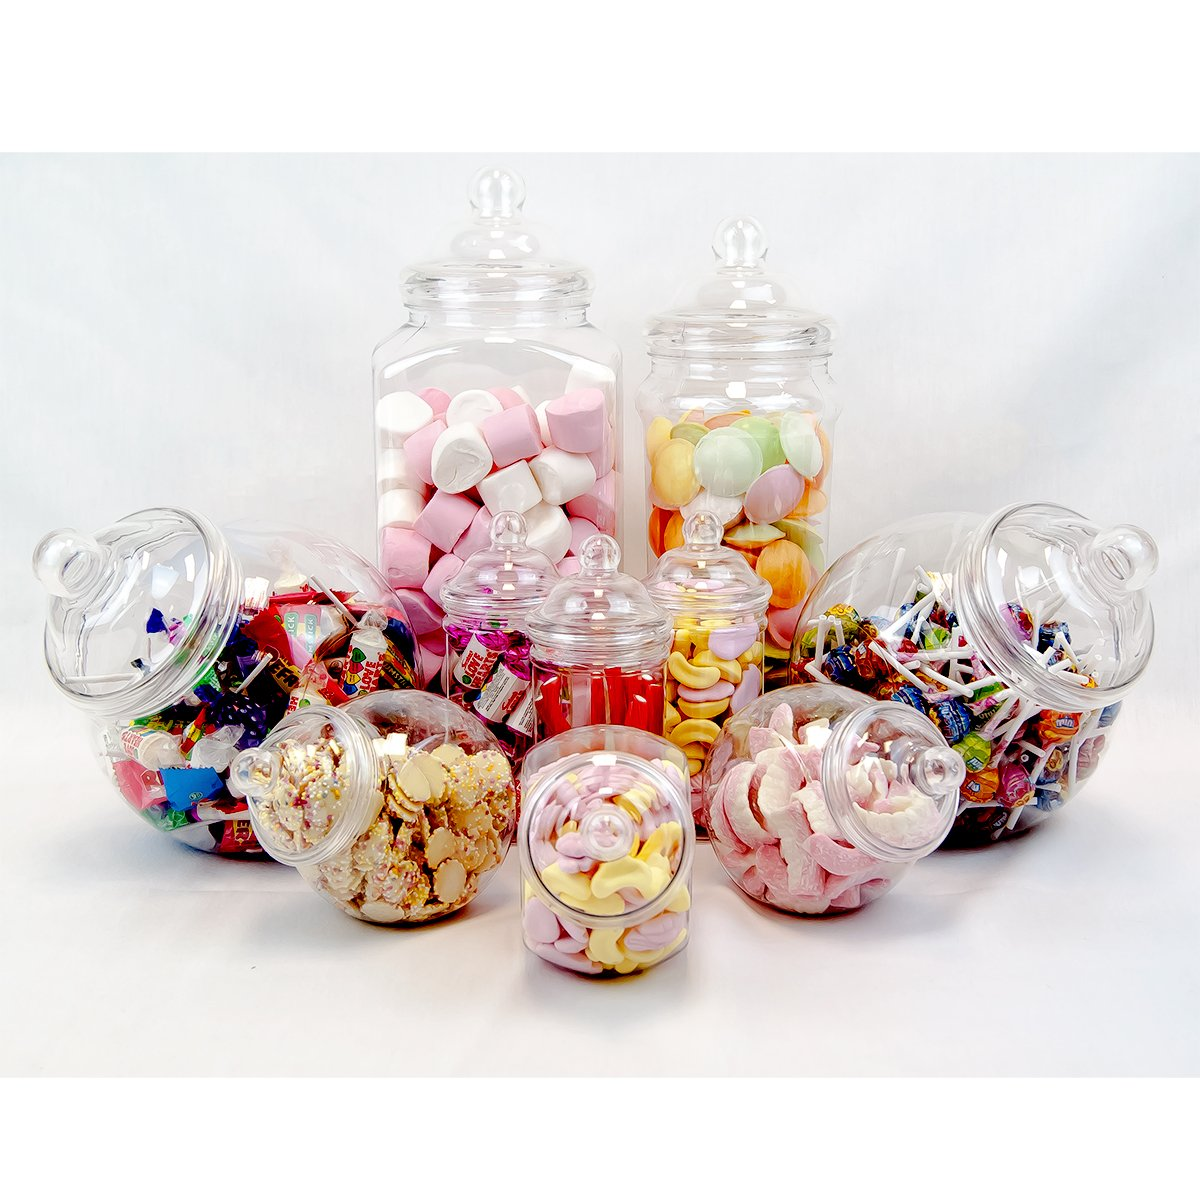 TOP STAR 10 Jar Vintage Victorian Pick & Mix Sweet Shop Candy Buffet Kit Party Pack